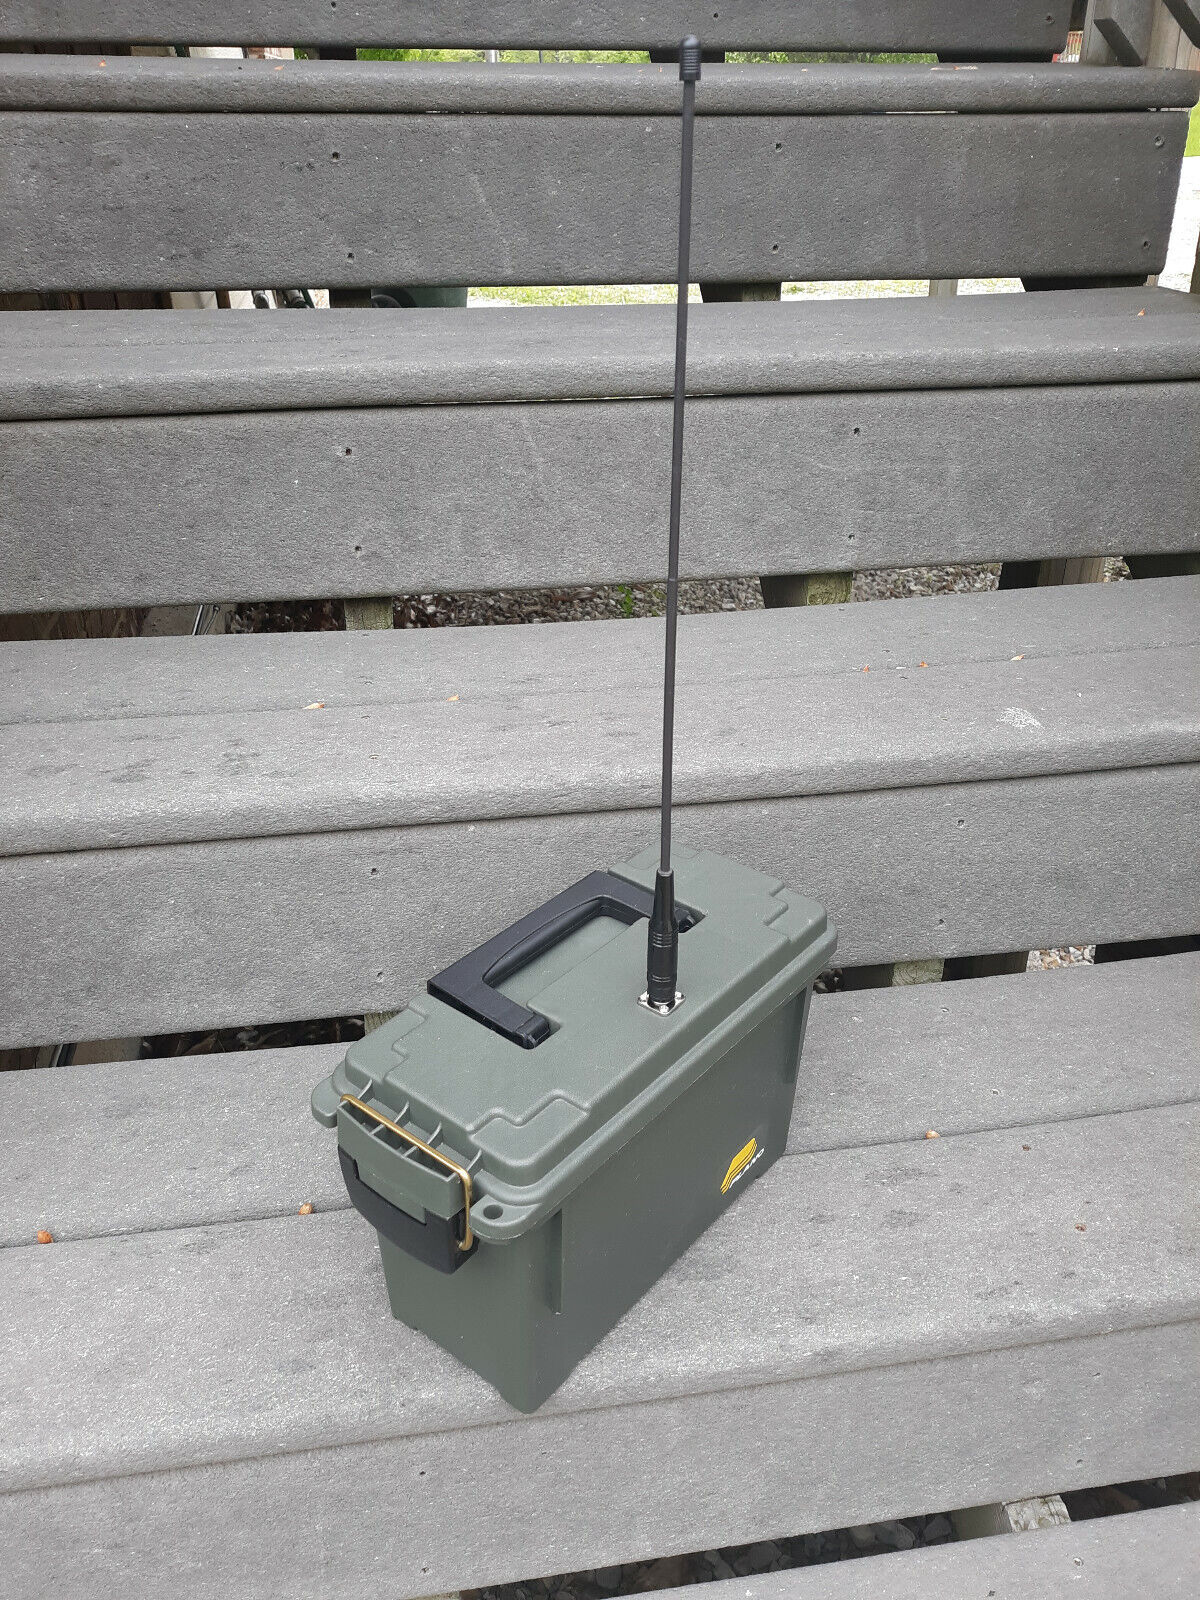 Tactical Radio Repeater - Crossband  VHF/UHF - Self Contained. Available Now for 199.00